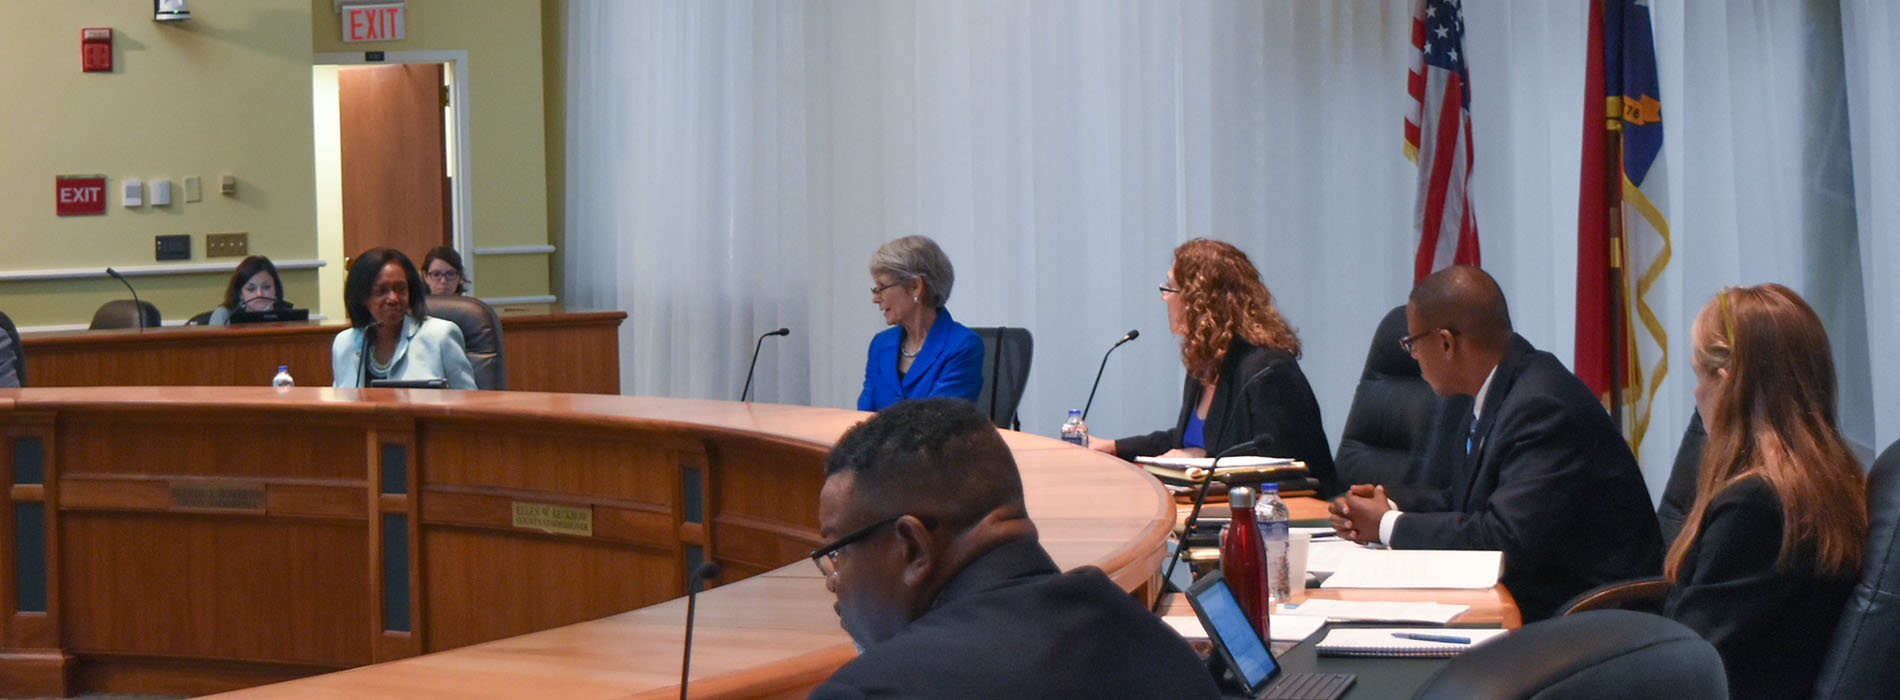 Board of County Commissioners sit at desks during meeting